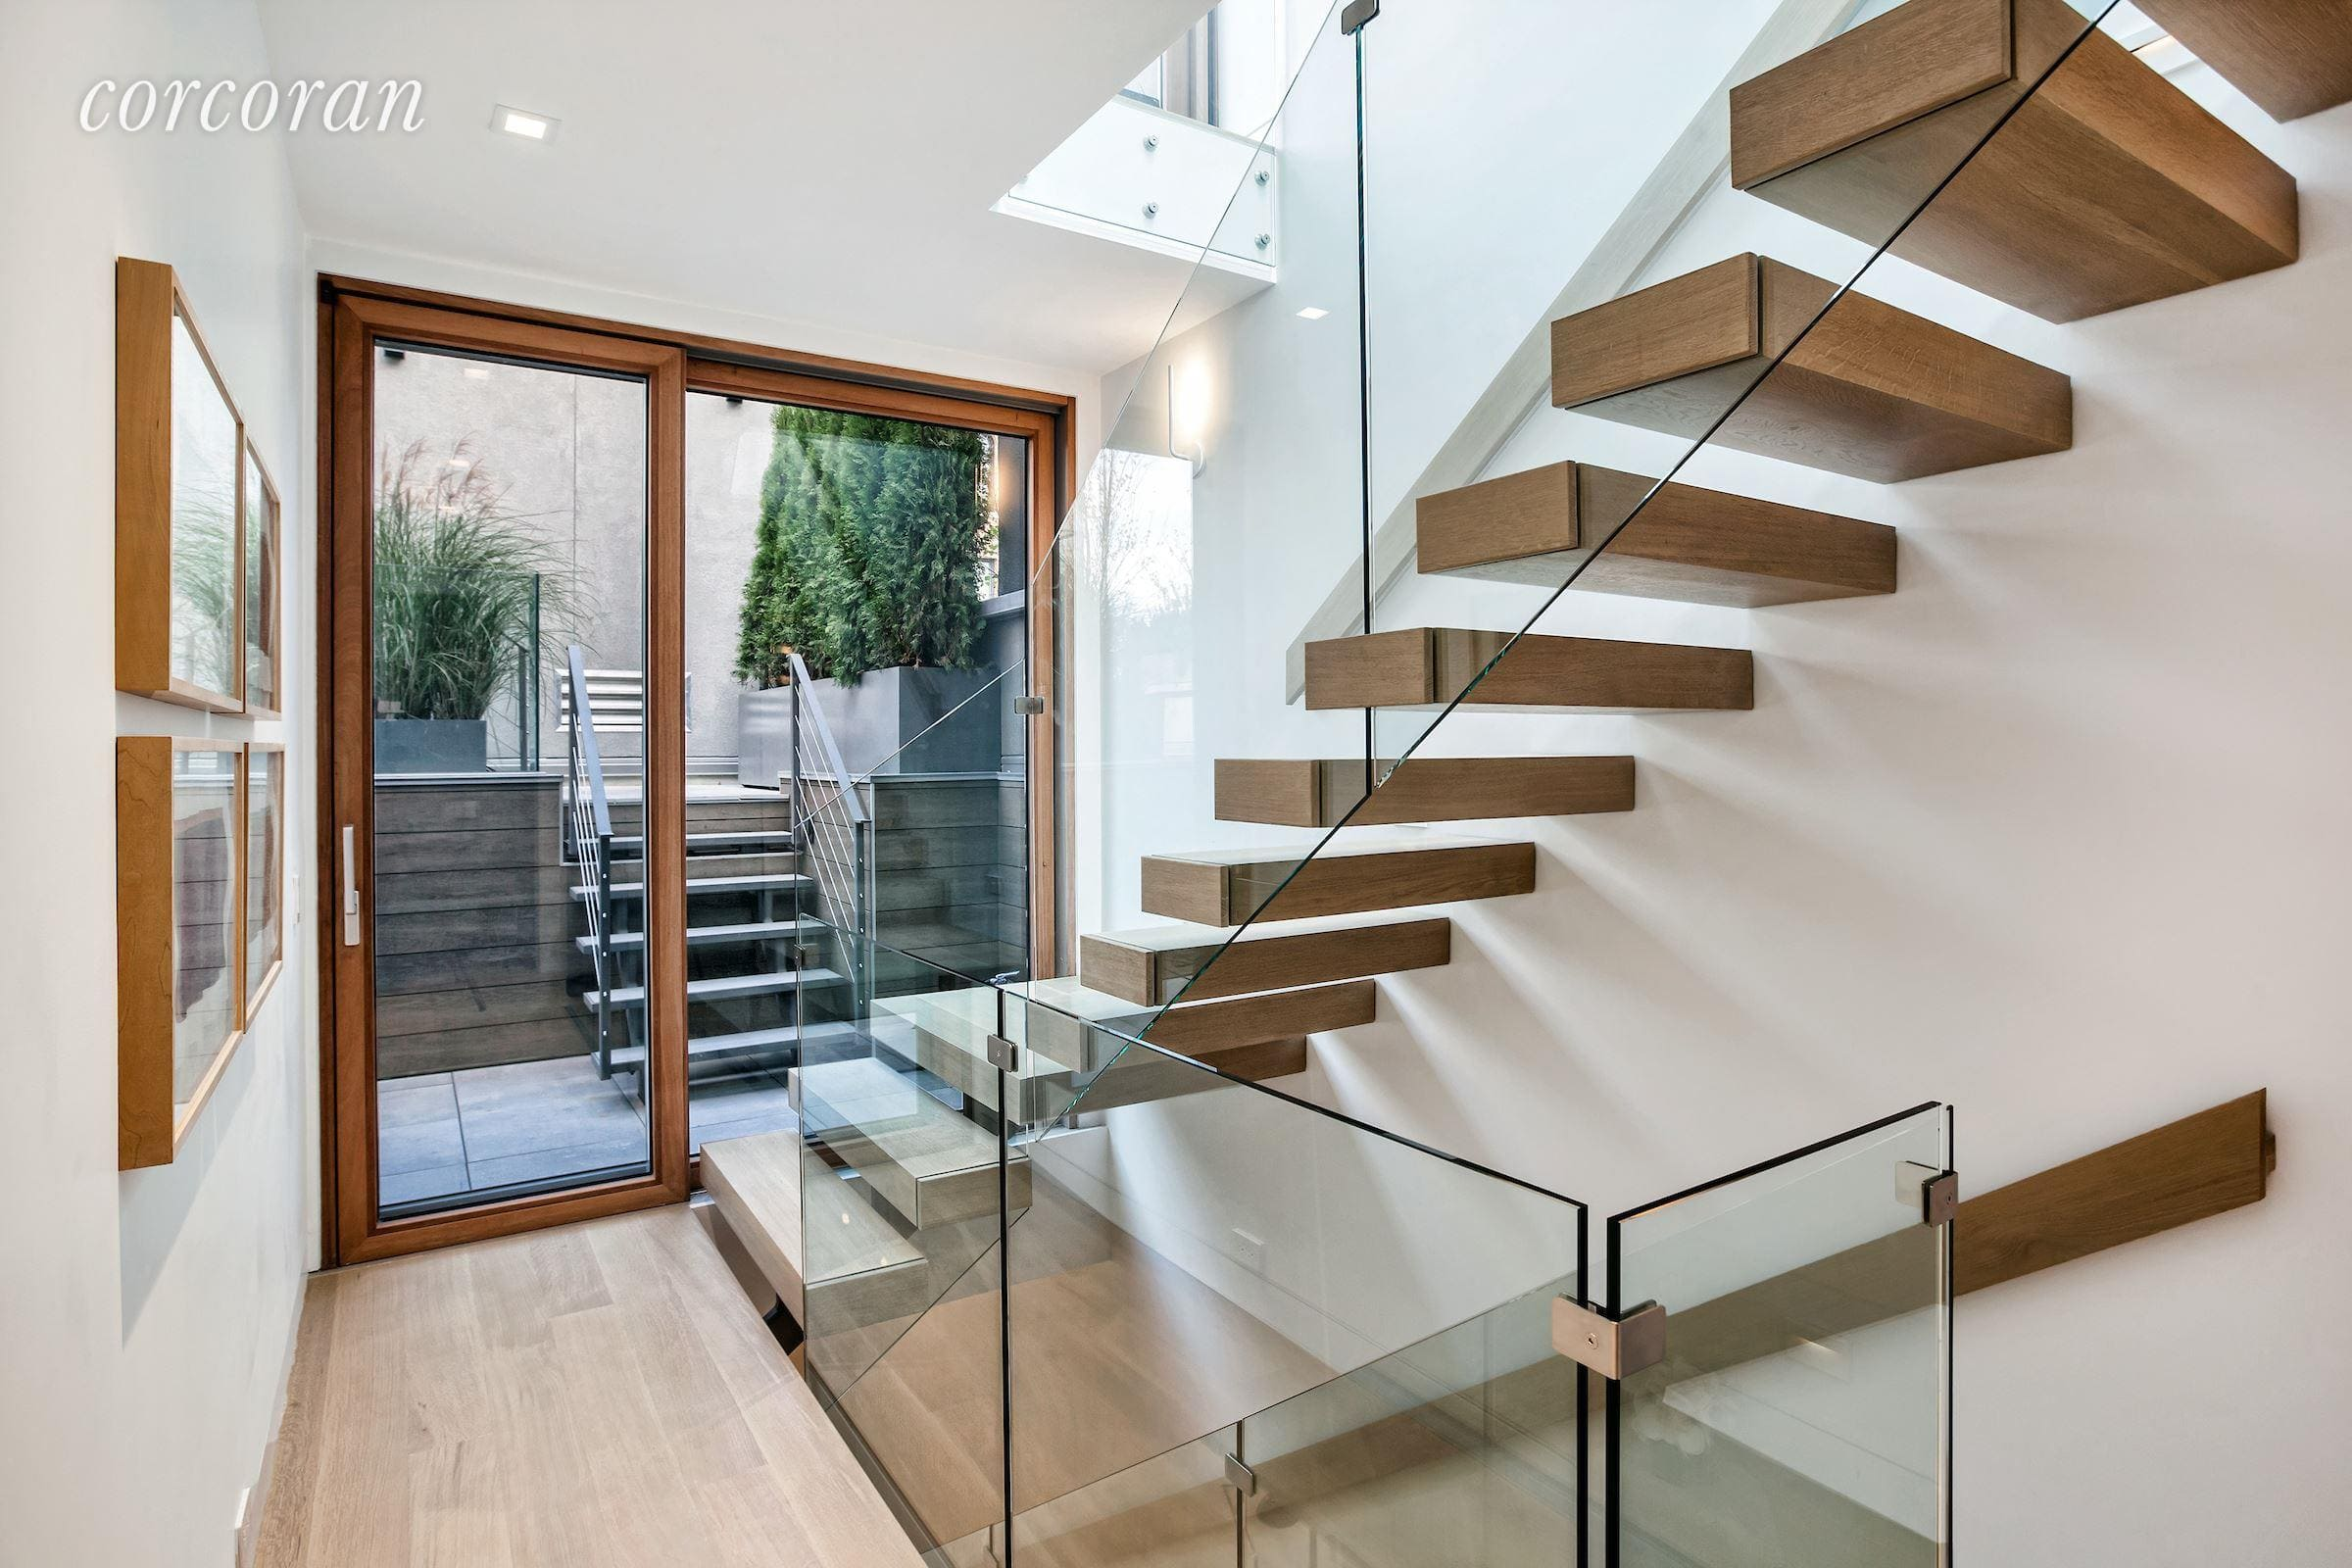 Handrails & Glass Balustrades